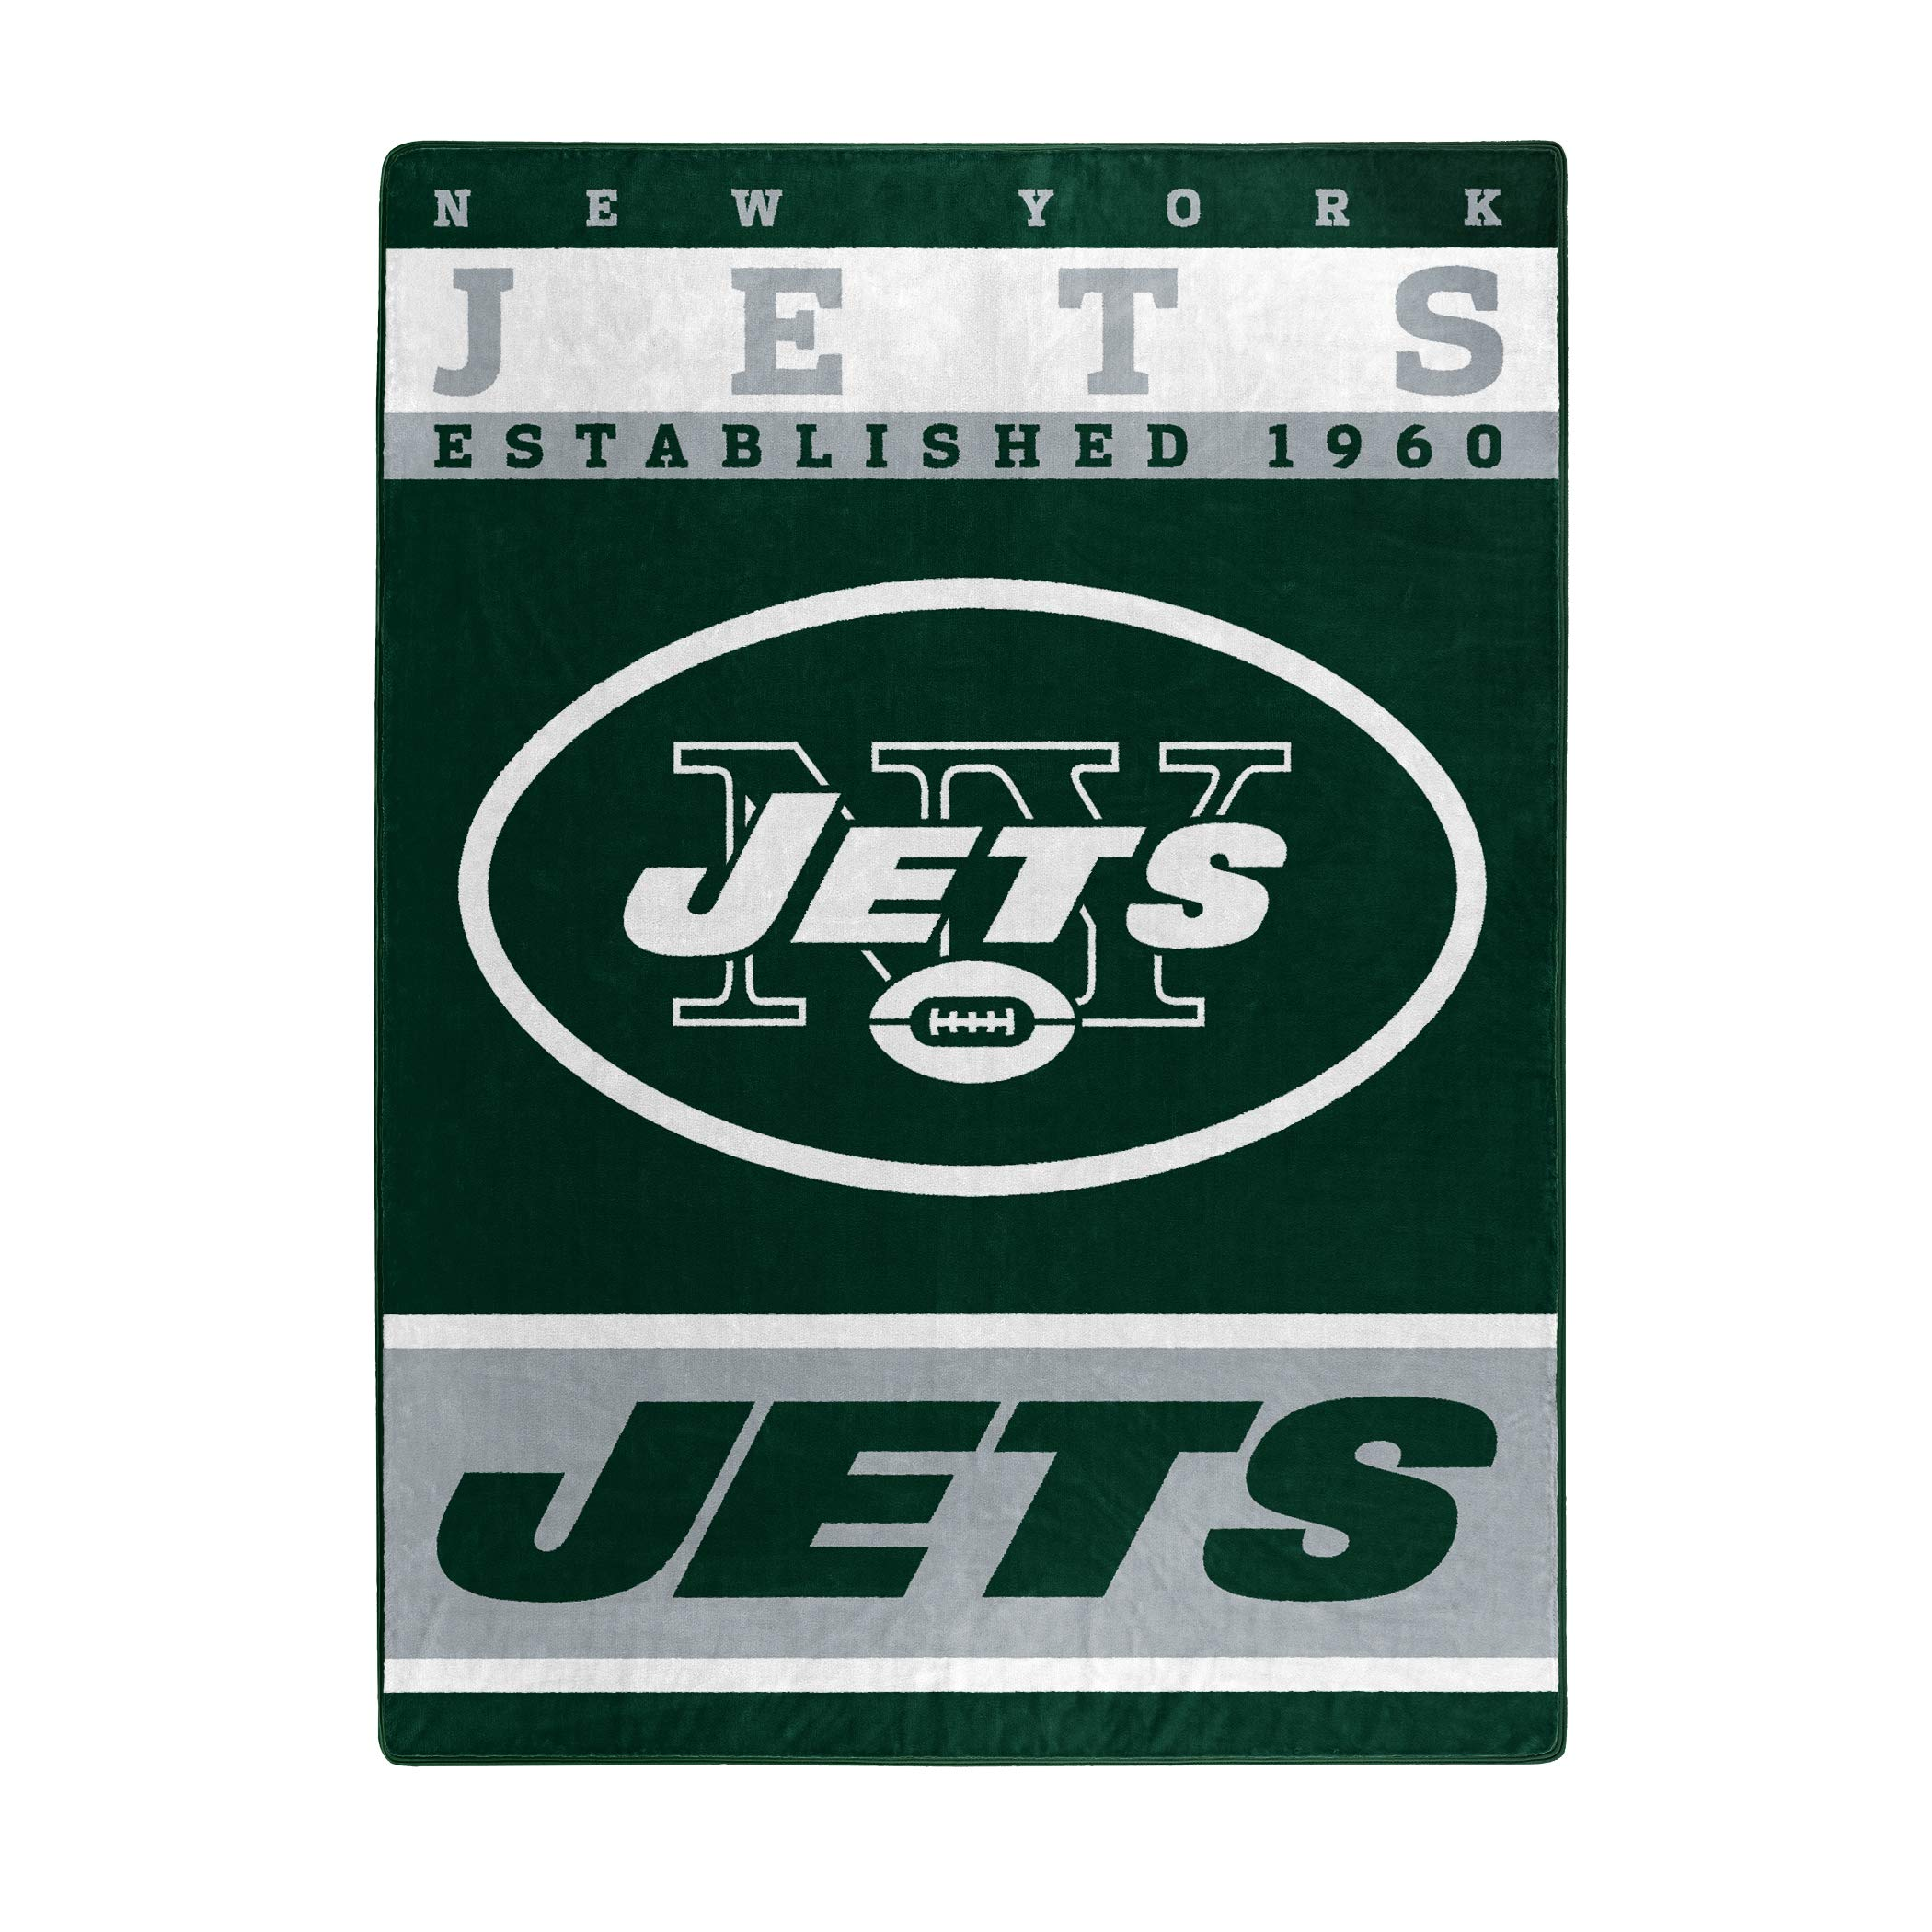 The Northwest Company Officially Licensed NFL New York Jets 12th Man Plush Raschel Throw Blanket, 60'' x 80'', Multi Color by The Northwest Company